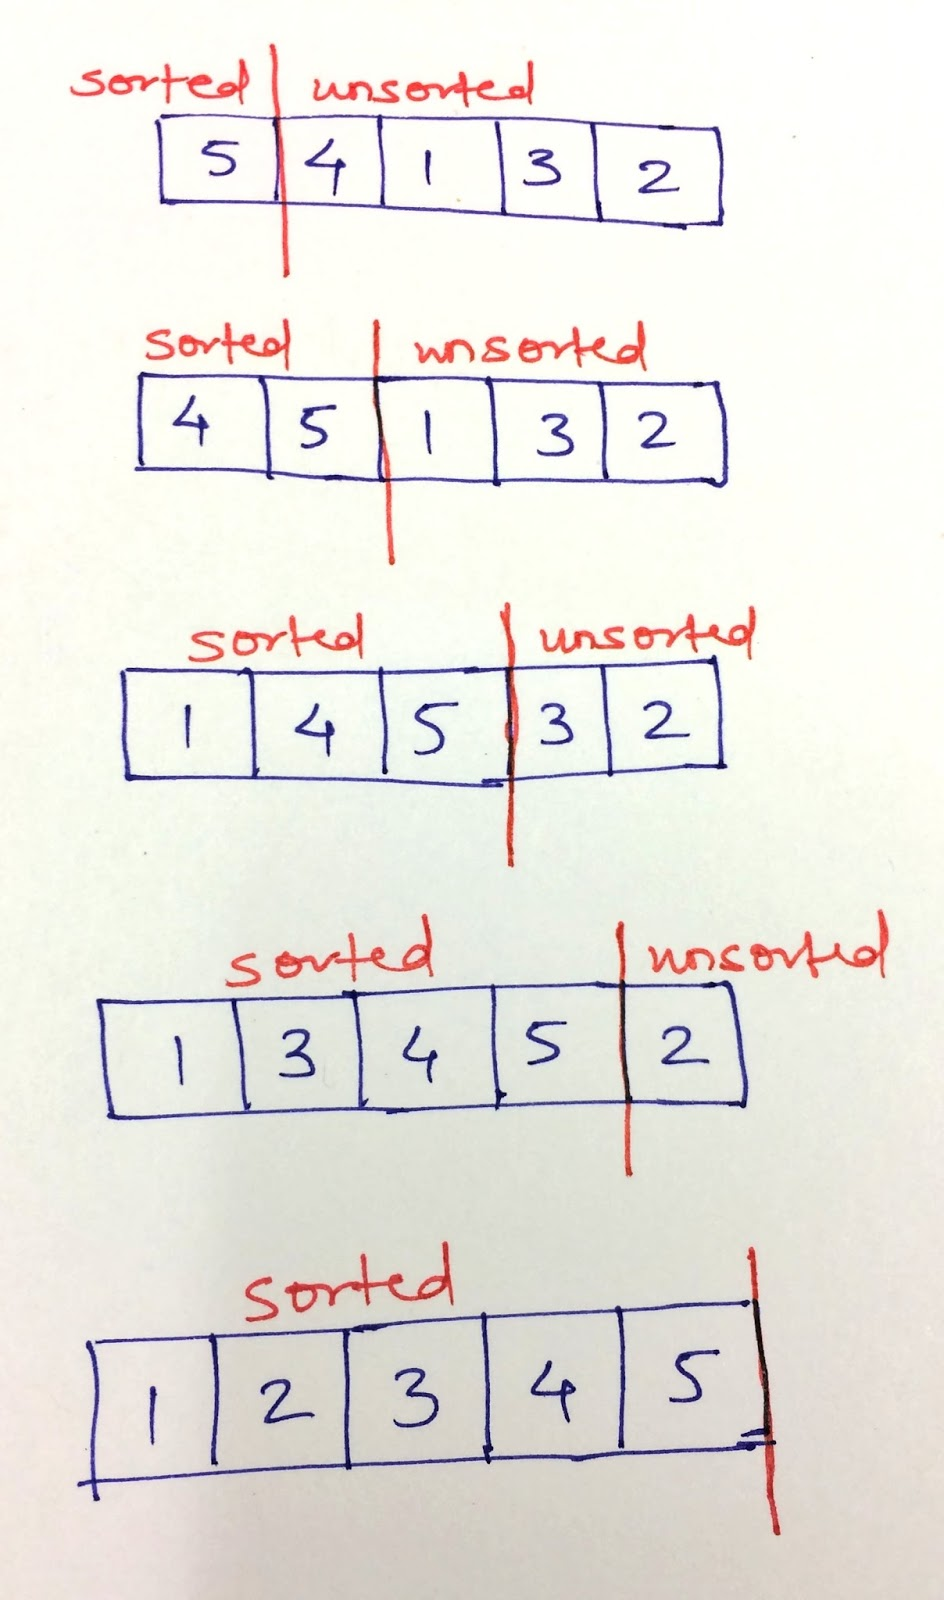 Insertion Sorting Algorithm